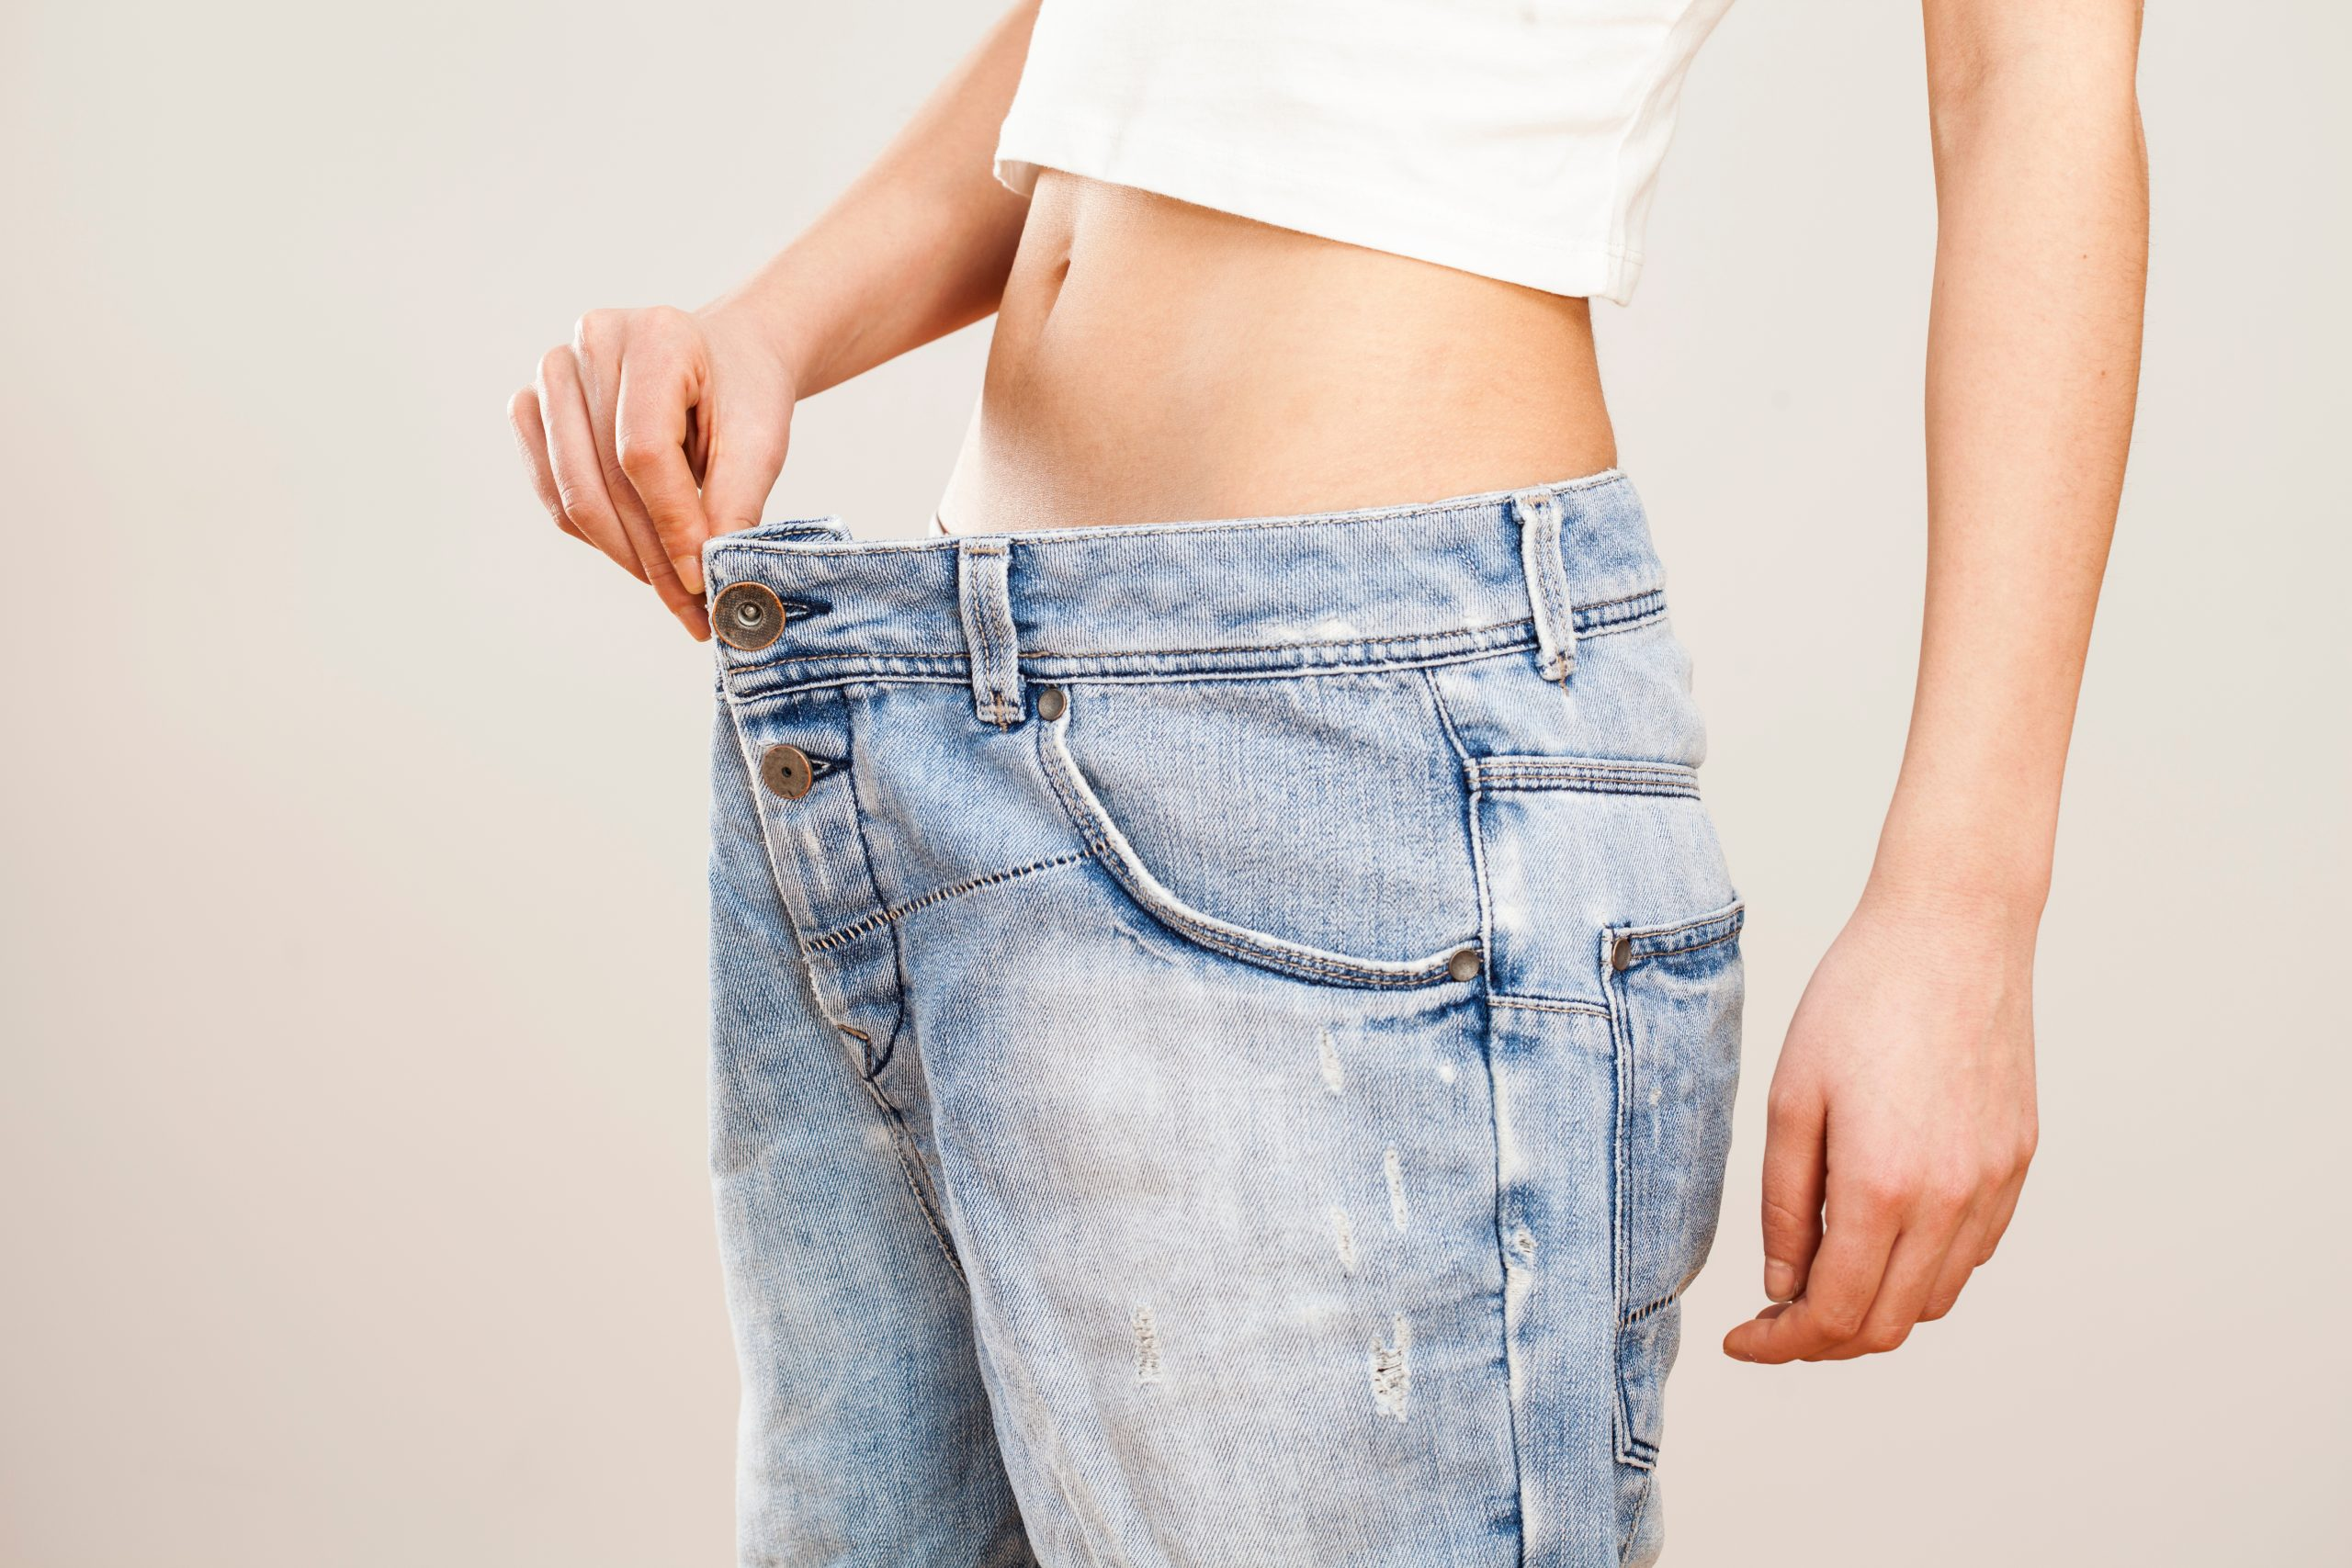 Weight loss through a natural and holistic approach